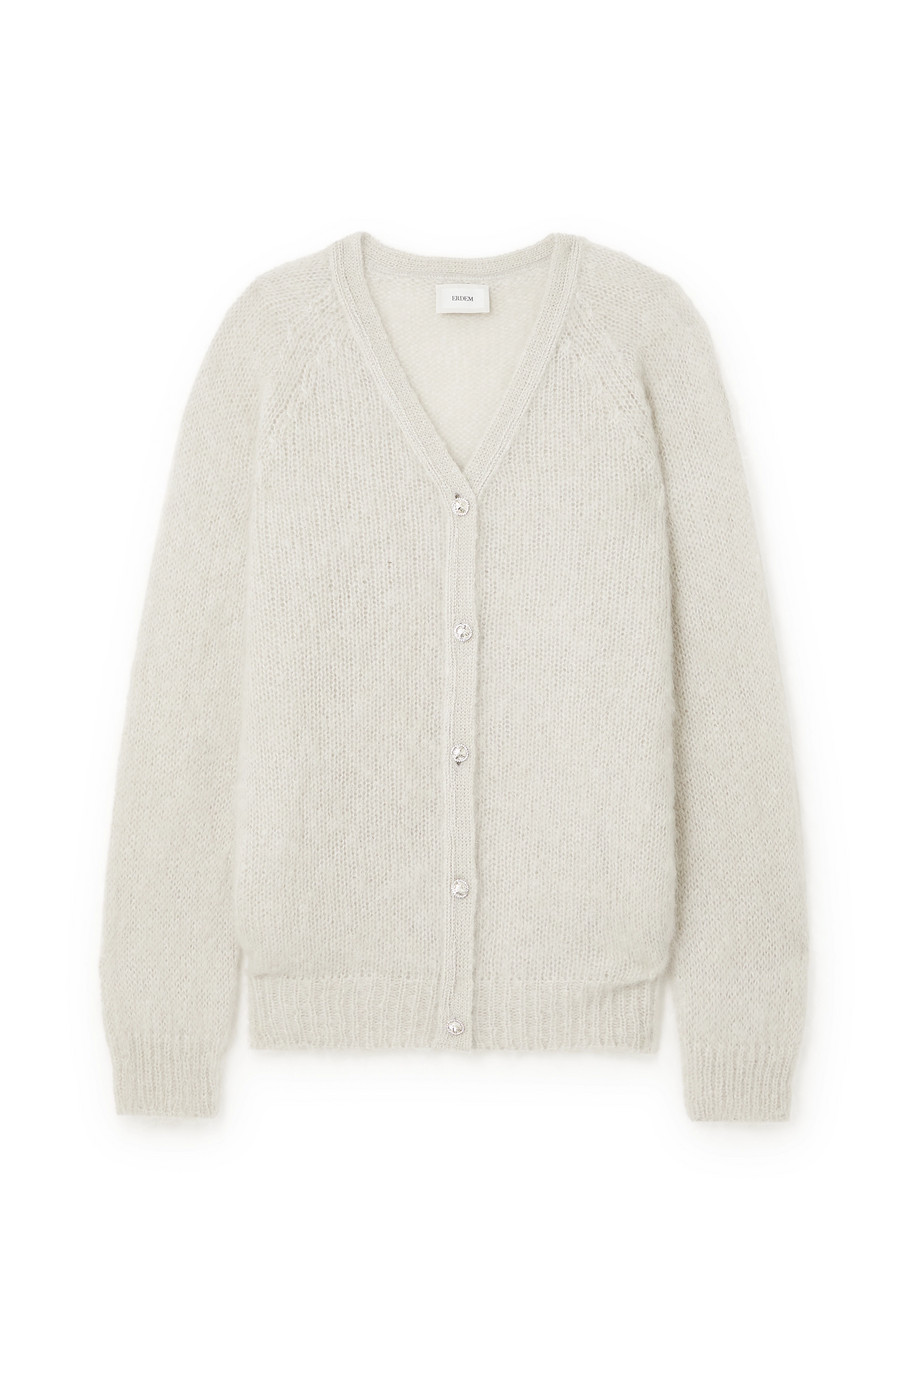 Erdem Marcilly crystal-embellished mohair-blend cardigan